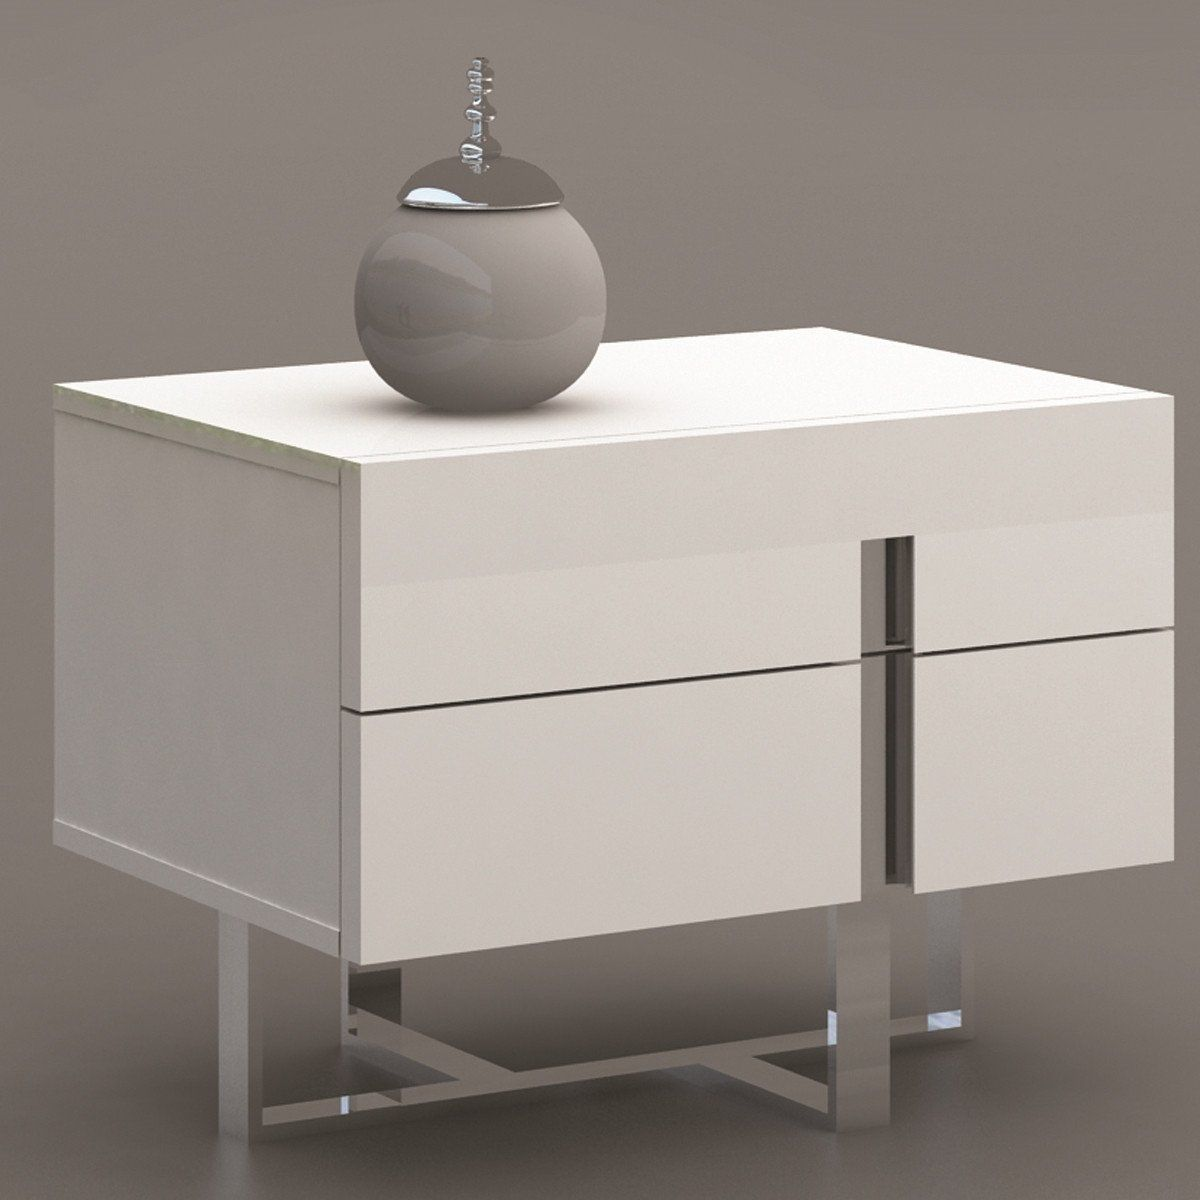 Casabianca Collins High Gloss White Lacquer Nightstand End Table Cb 1302 N This High Gloss White Lacquer Nigh High Gloss White Lacquer Furniture Nightstand